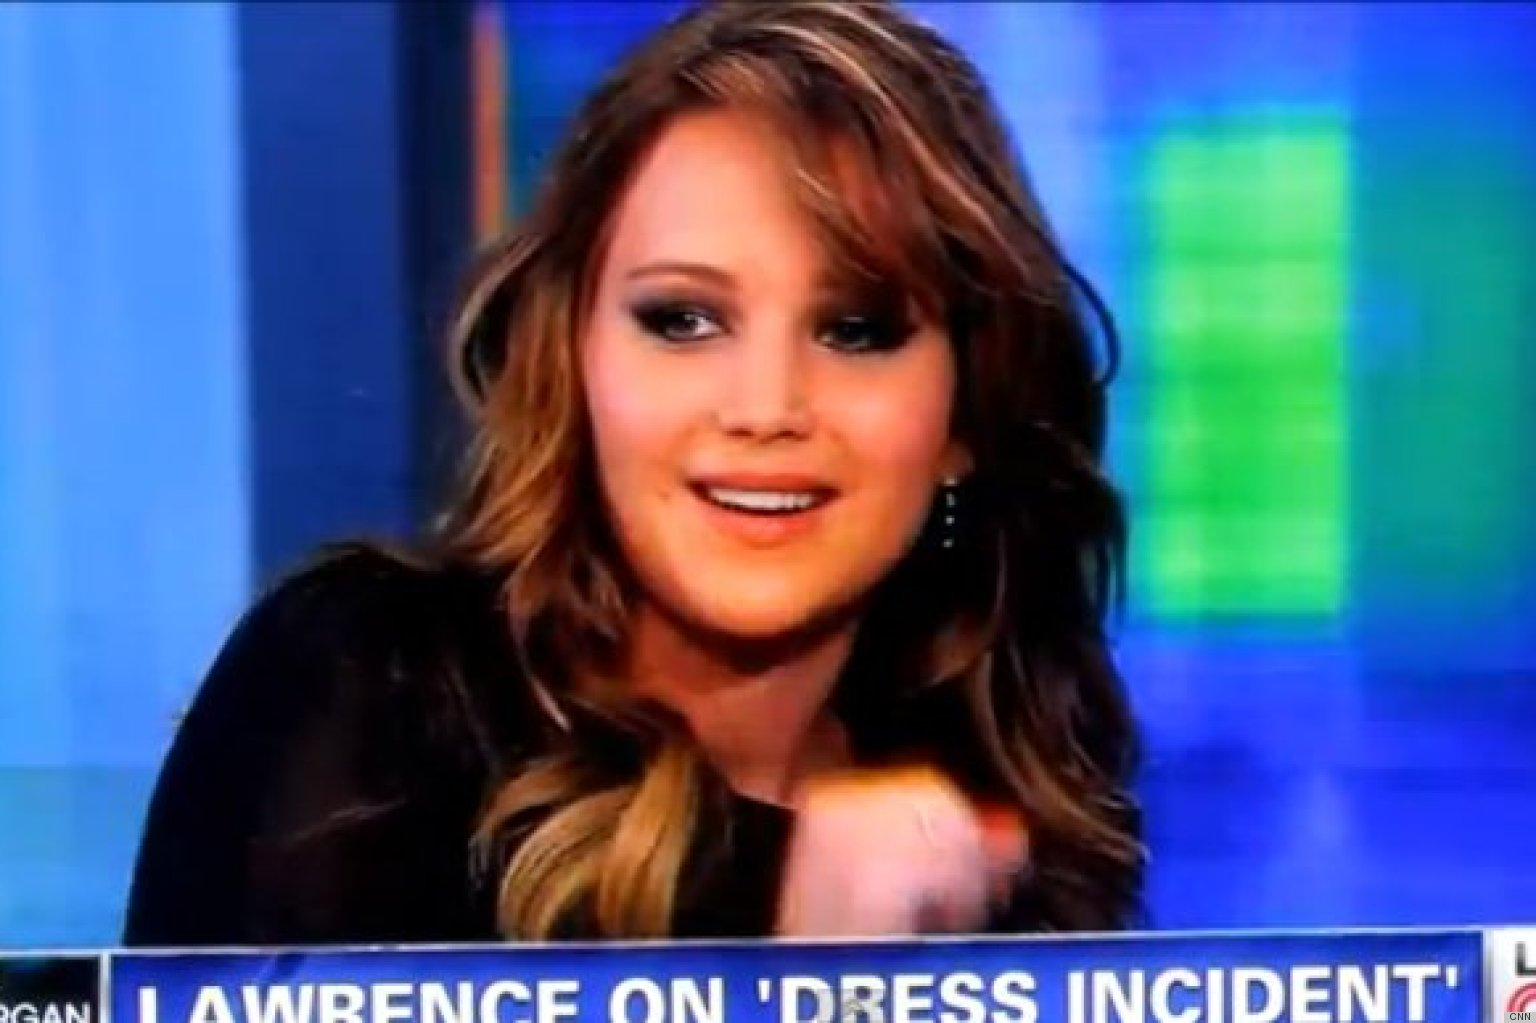 JENNIFER-LAWRENCE-WARDROBE-MALFUNCTION-facebook.jpg